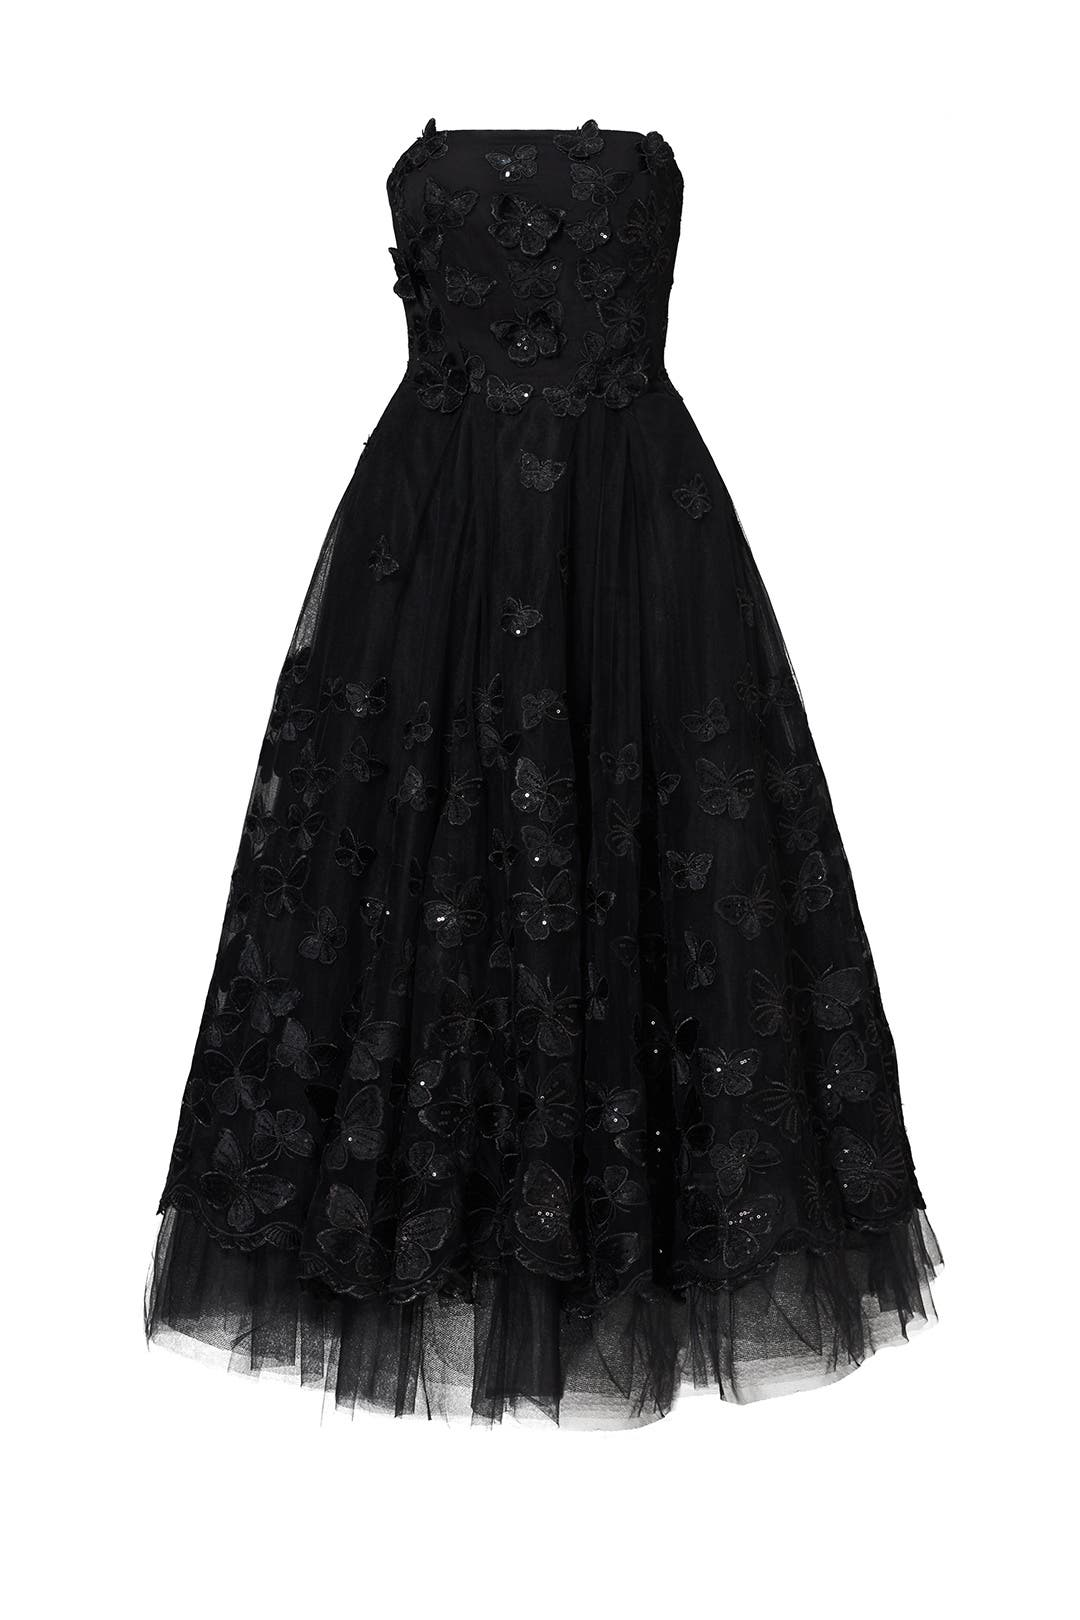 Closet Butterfly Dress - think this would be a good style for me, but would love a pop of color in it vs. just black and white. Closet Butterfly Dress - nice in any colour for spring or summer occasions as weddings, proms, parties. Bailey Butterfly Dress-butterfly, white, sun dress, dress, blue.